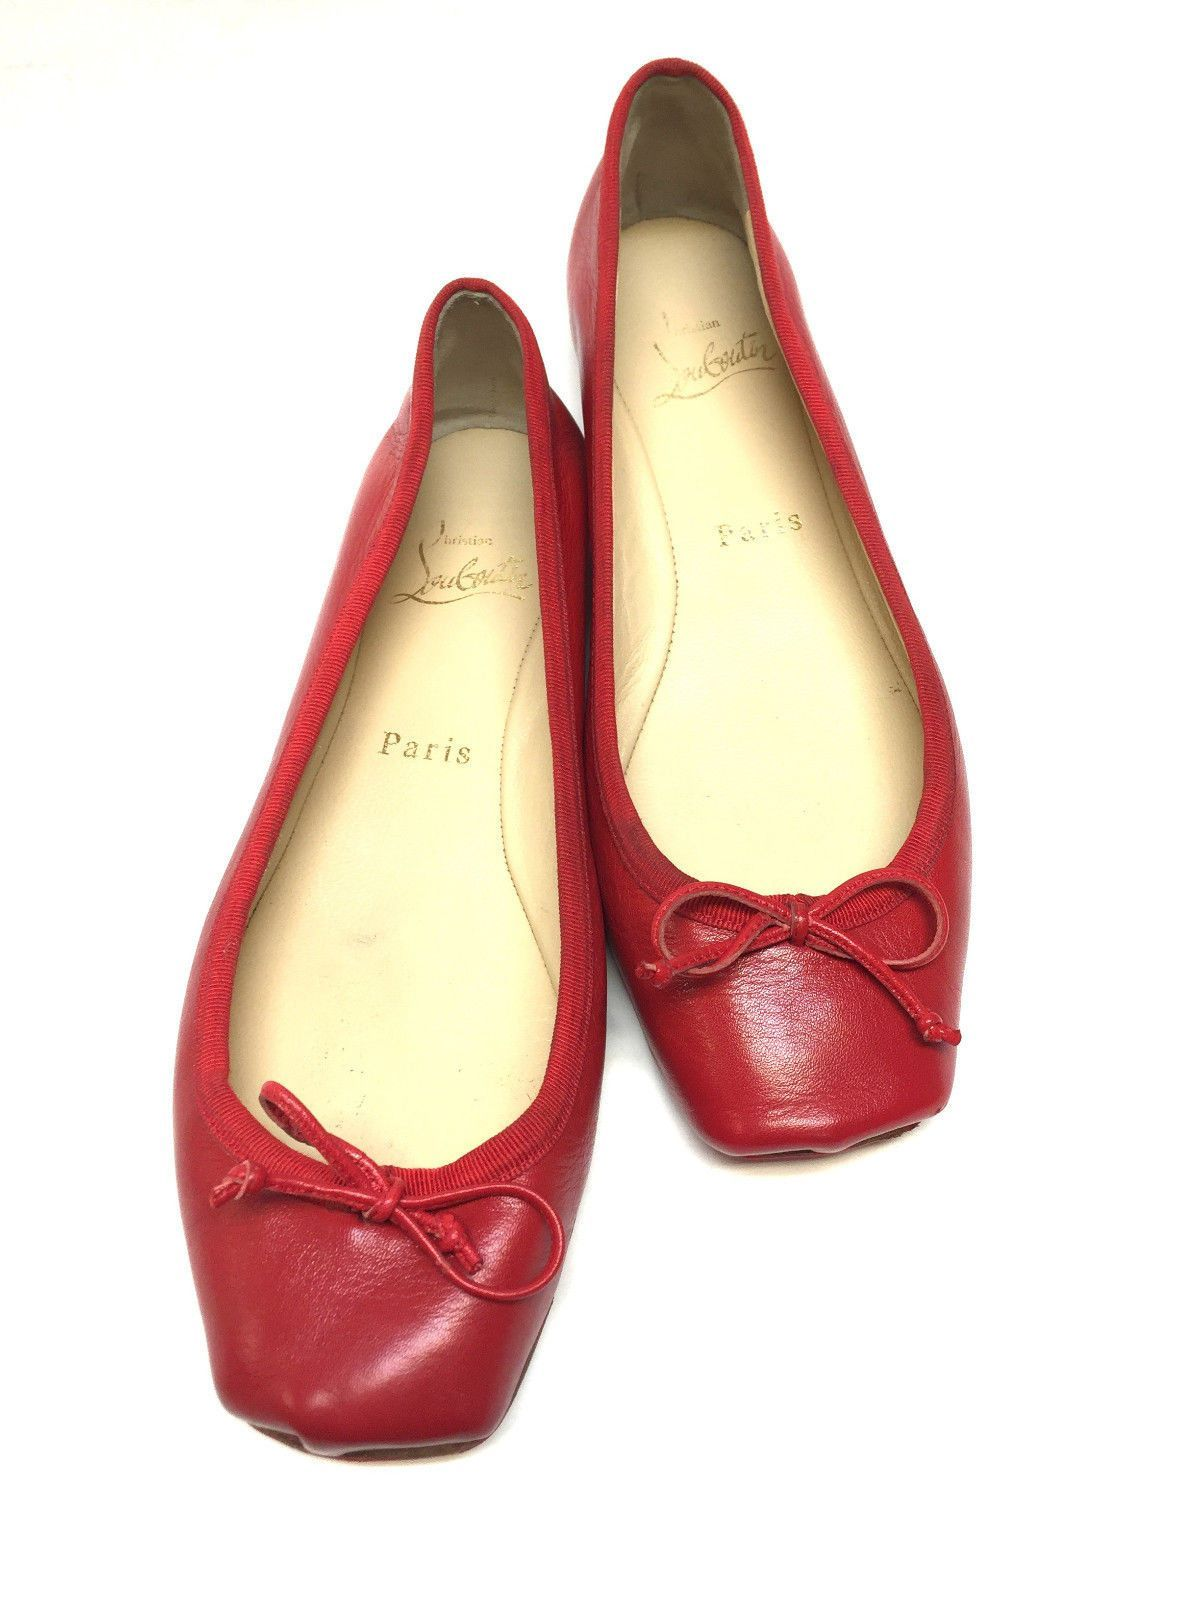 CHRISTIAN LOUBOUTIN Red Leather Ballet Flats Shoes Size: 37.5